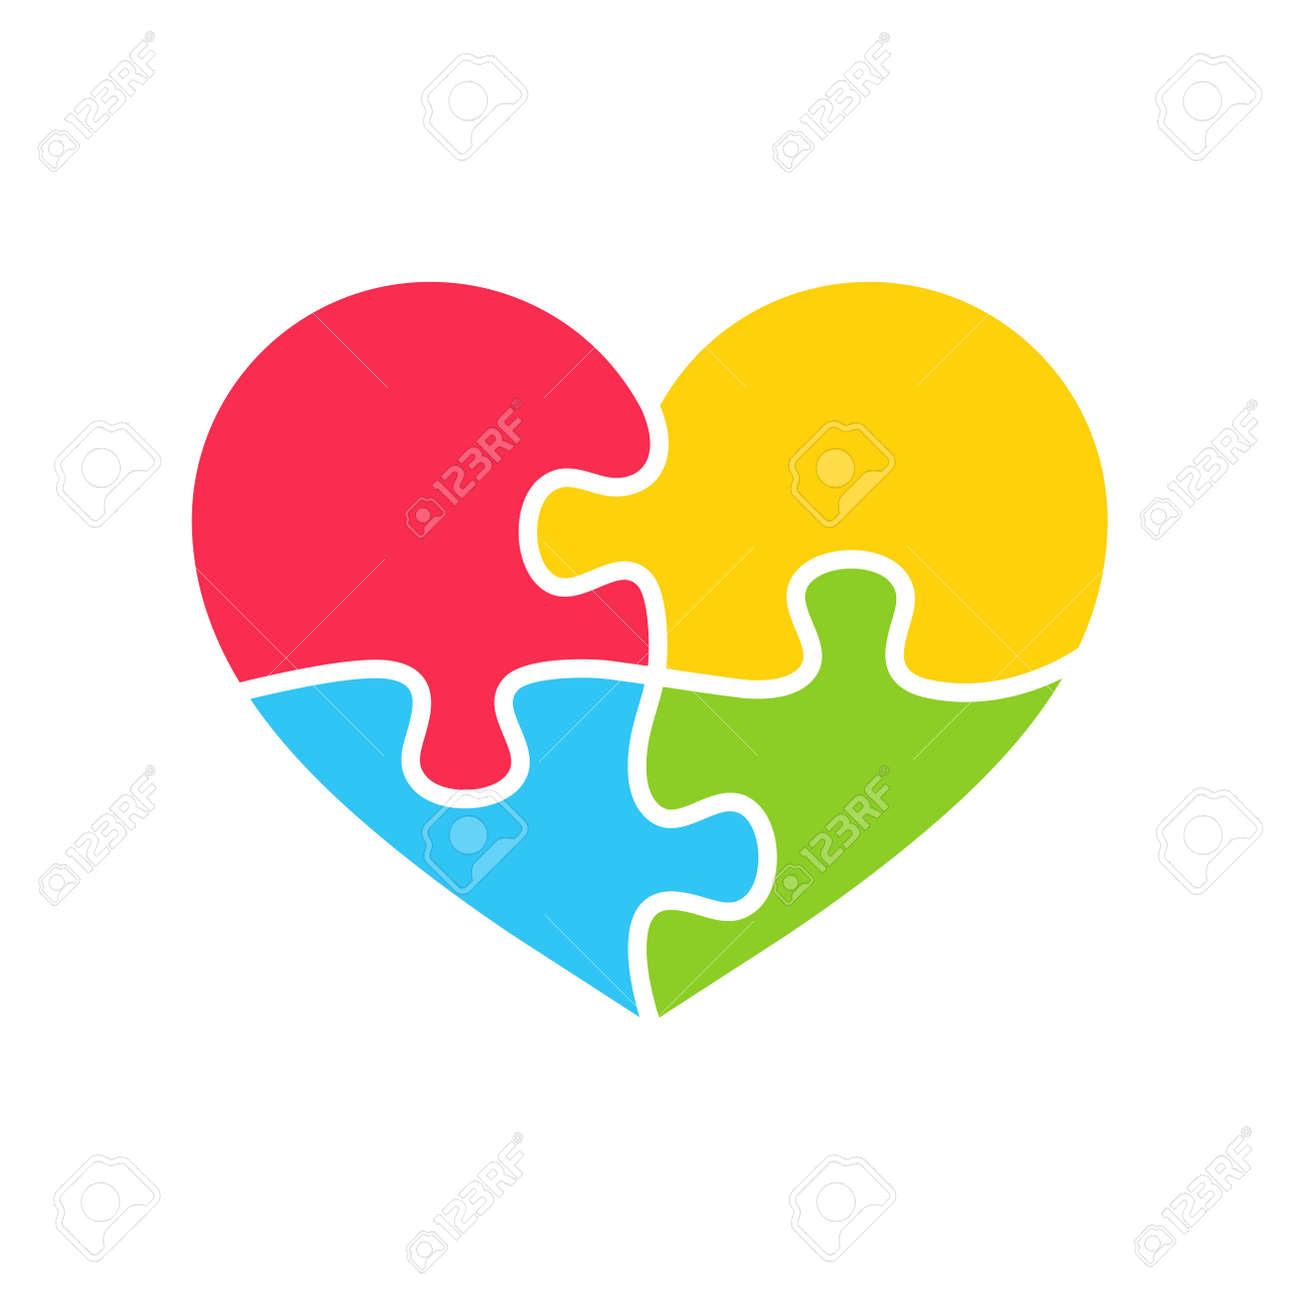 Heart shaped colorful puzzle The concept of children with autism. isolate on background. - 168257471